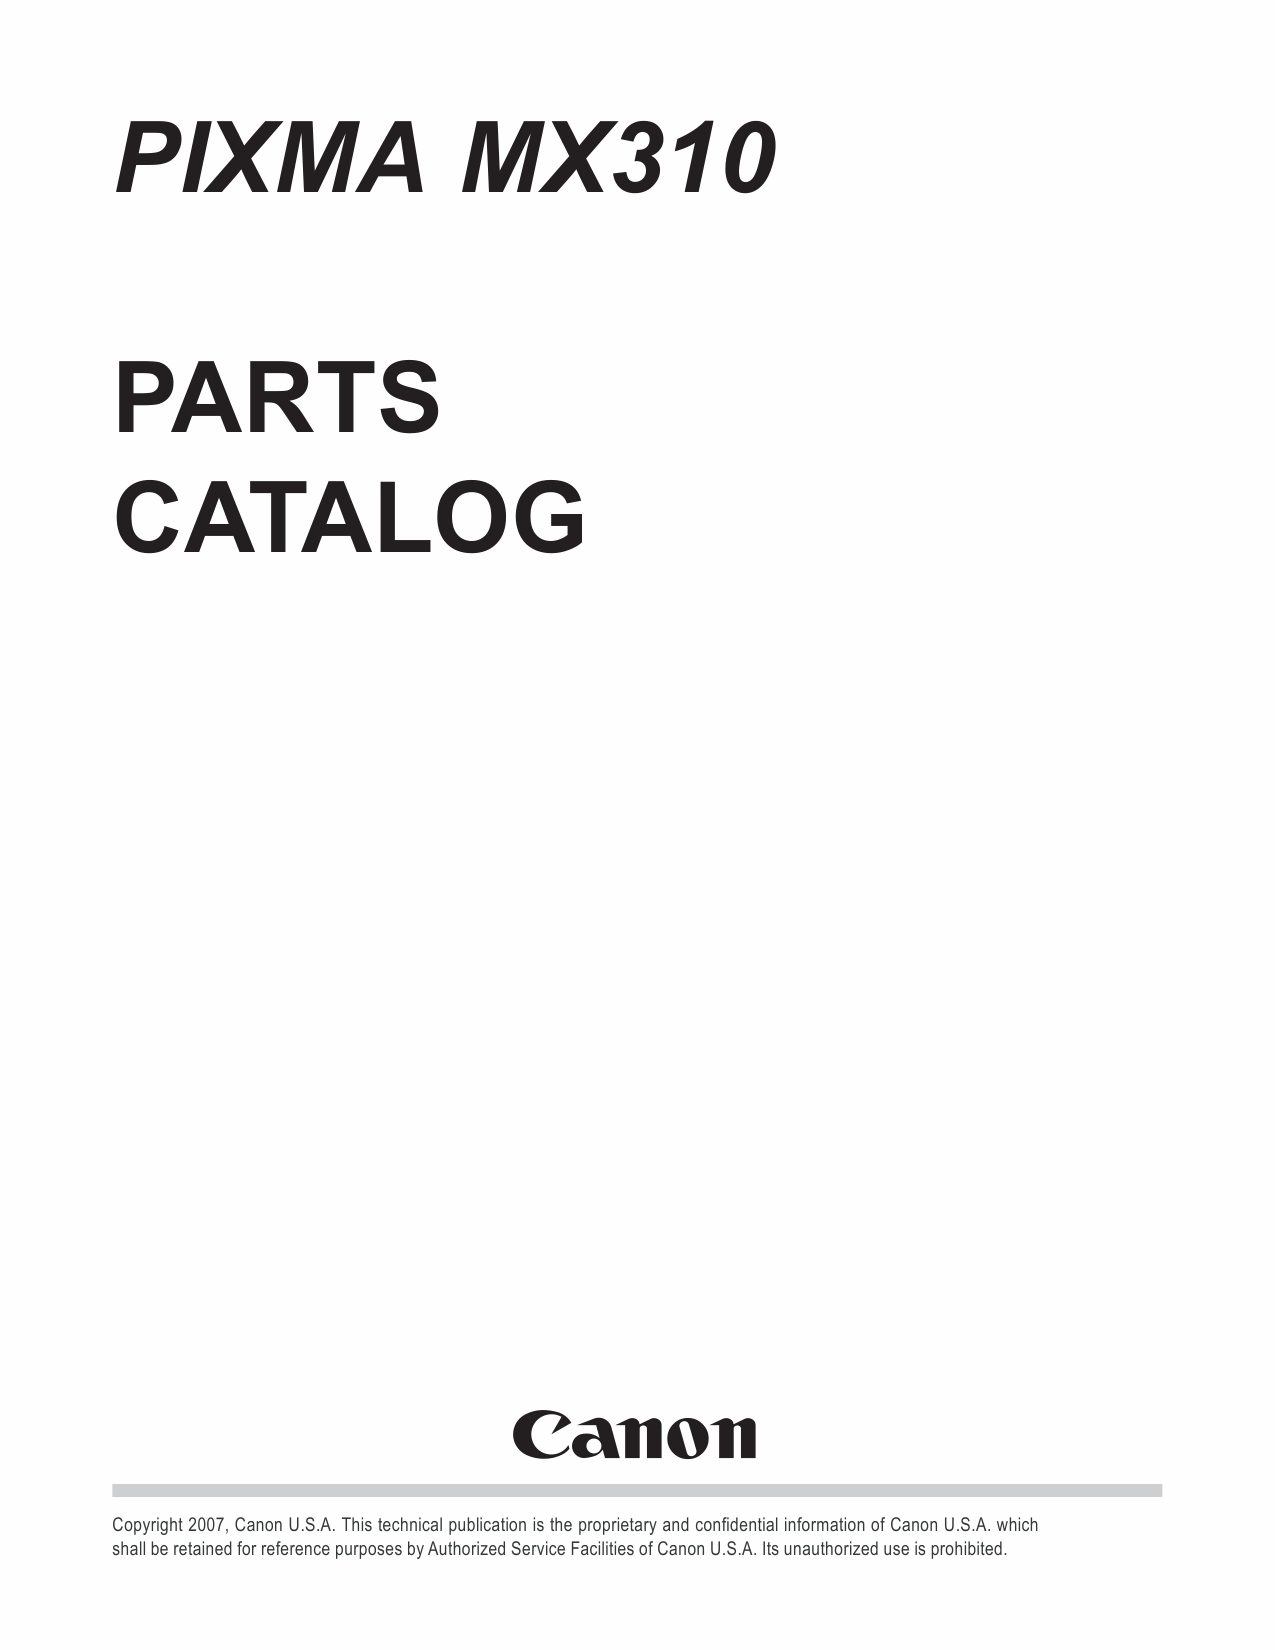 Canon PIXMA MX310 Parts Catalog